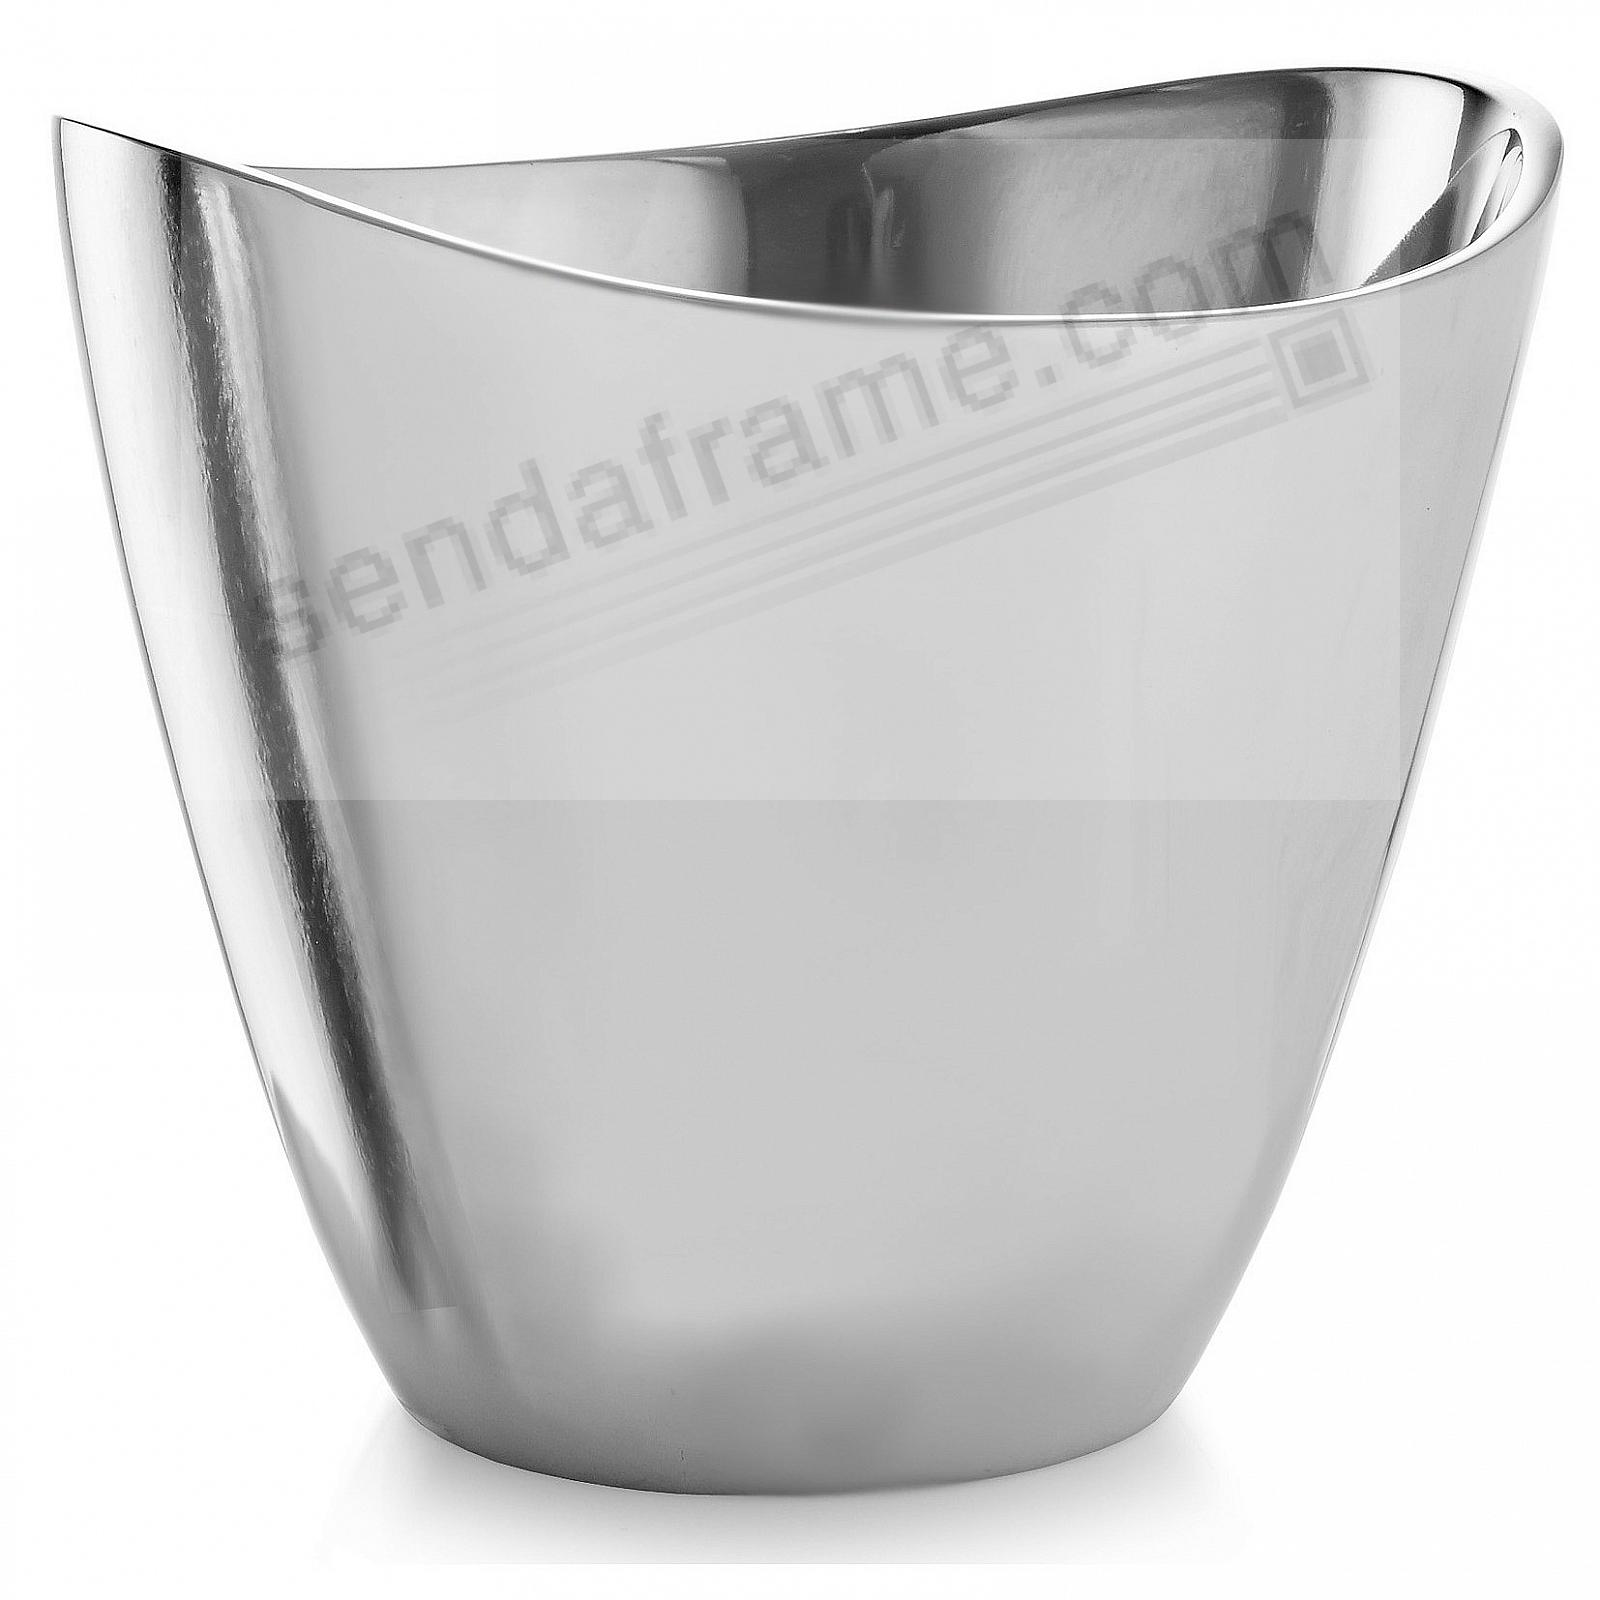 The VIE CHAMPAGNE BUCKET crafted by Nambe®